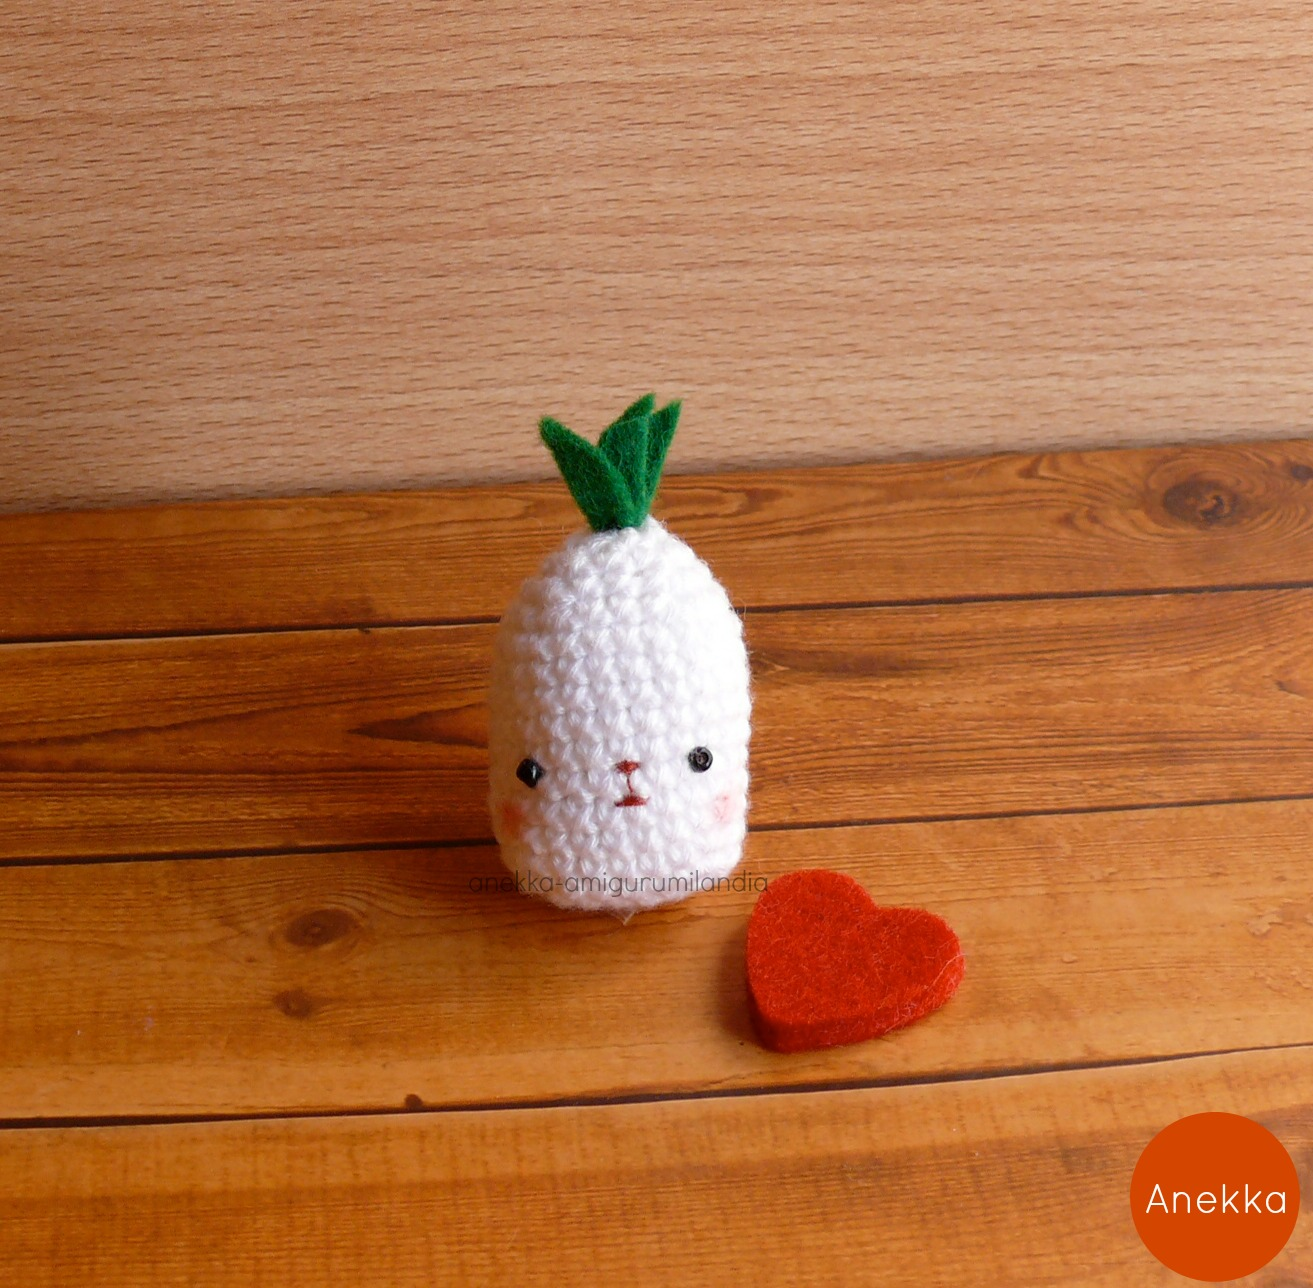 pineapple heart anekka handmade